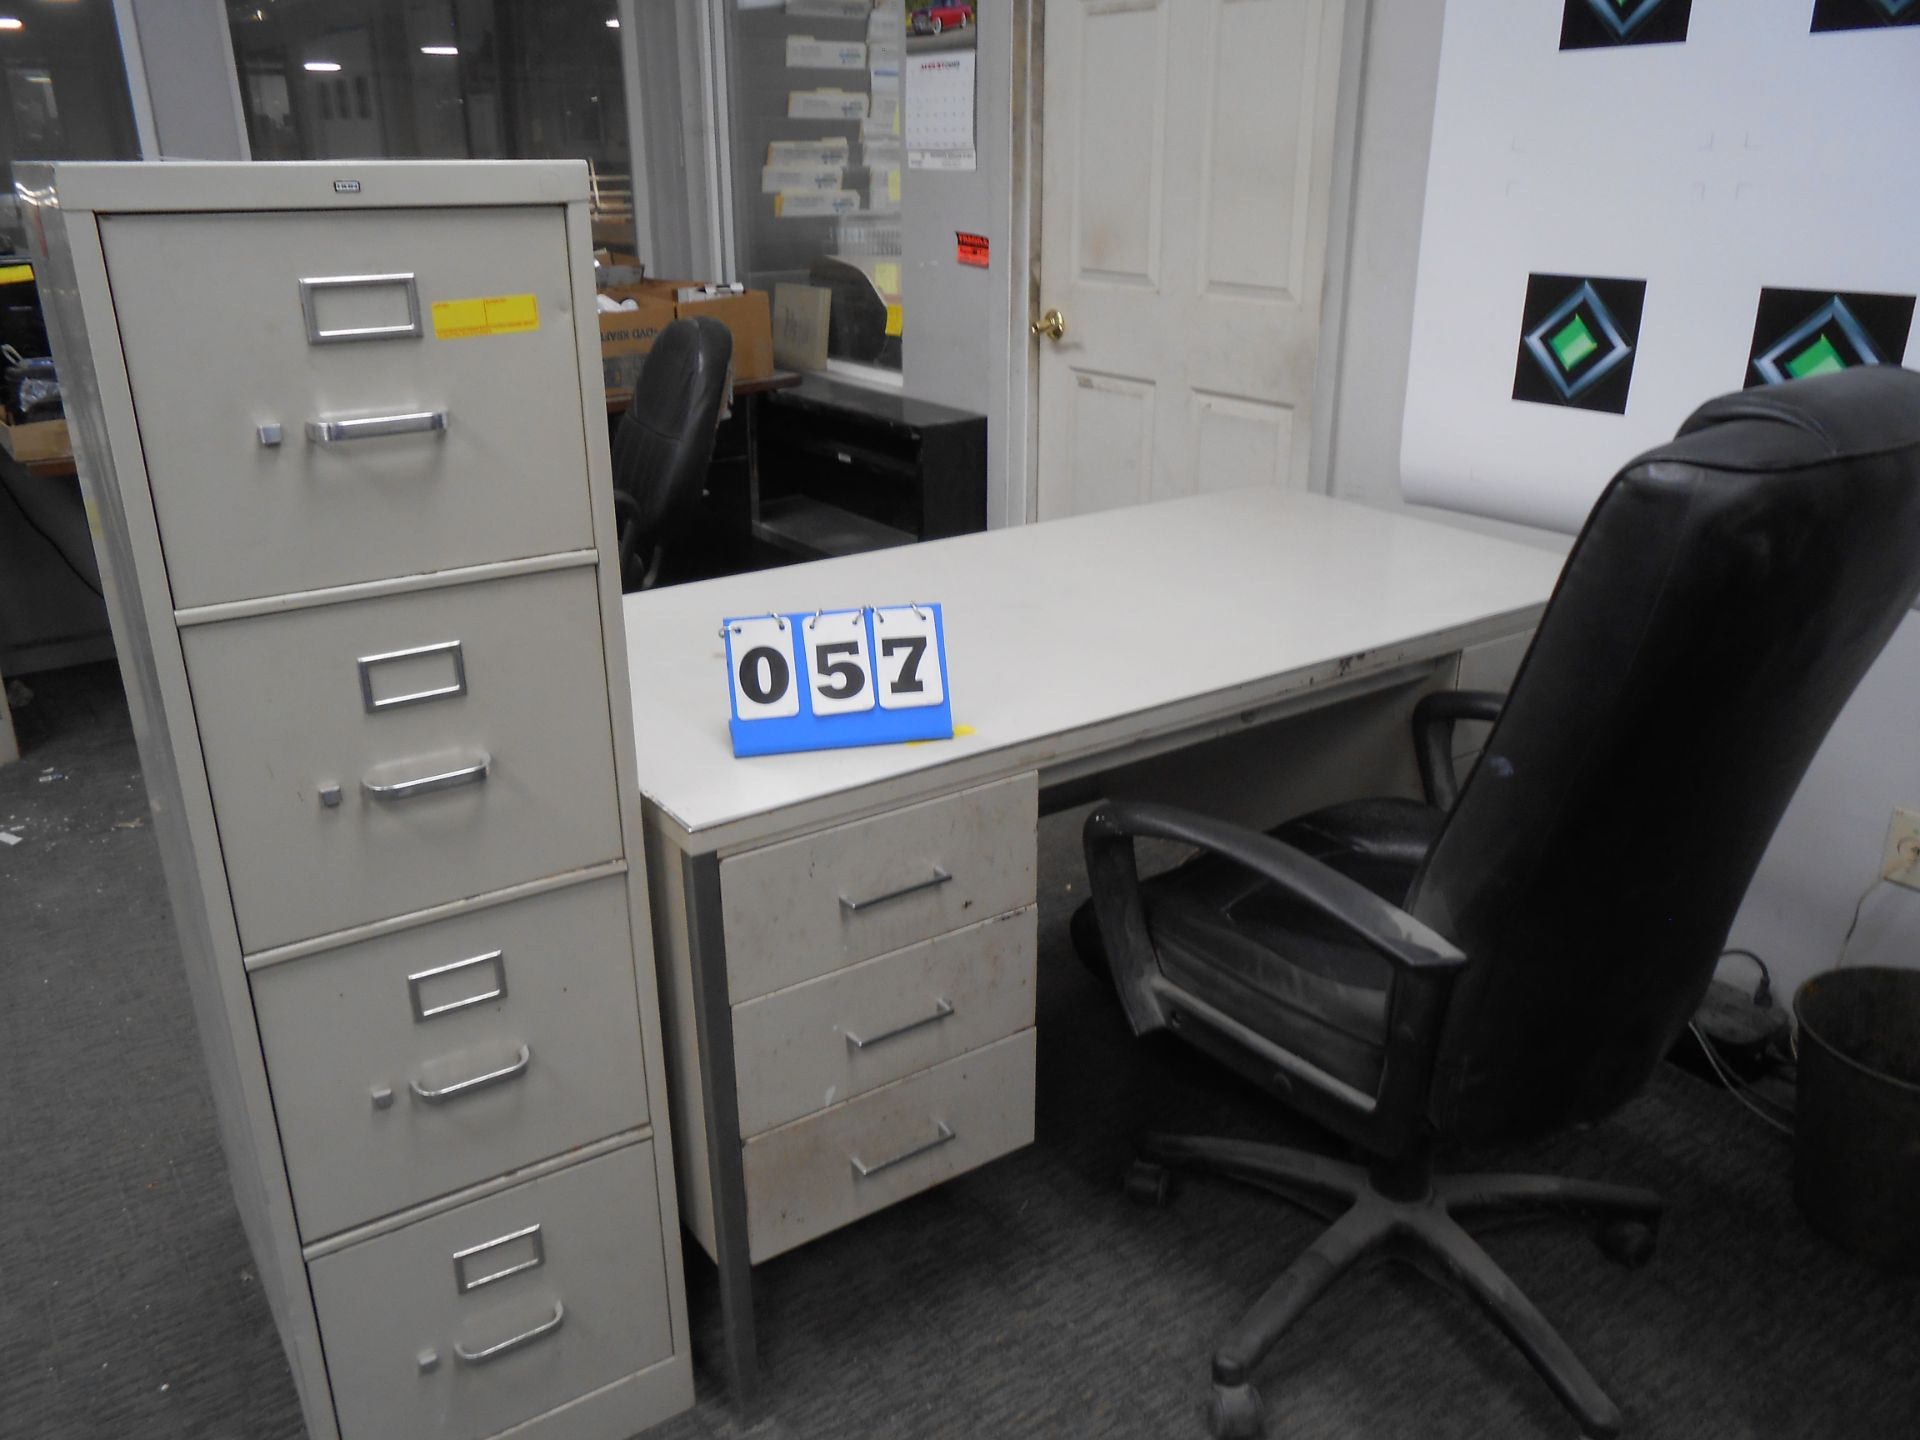 Lot 57 - desk, Chair, 4-Drawer Filing Cabinet